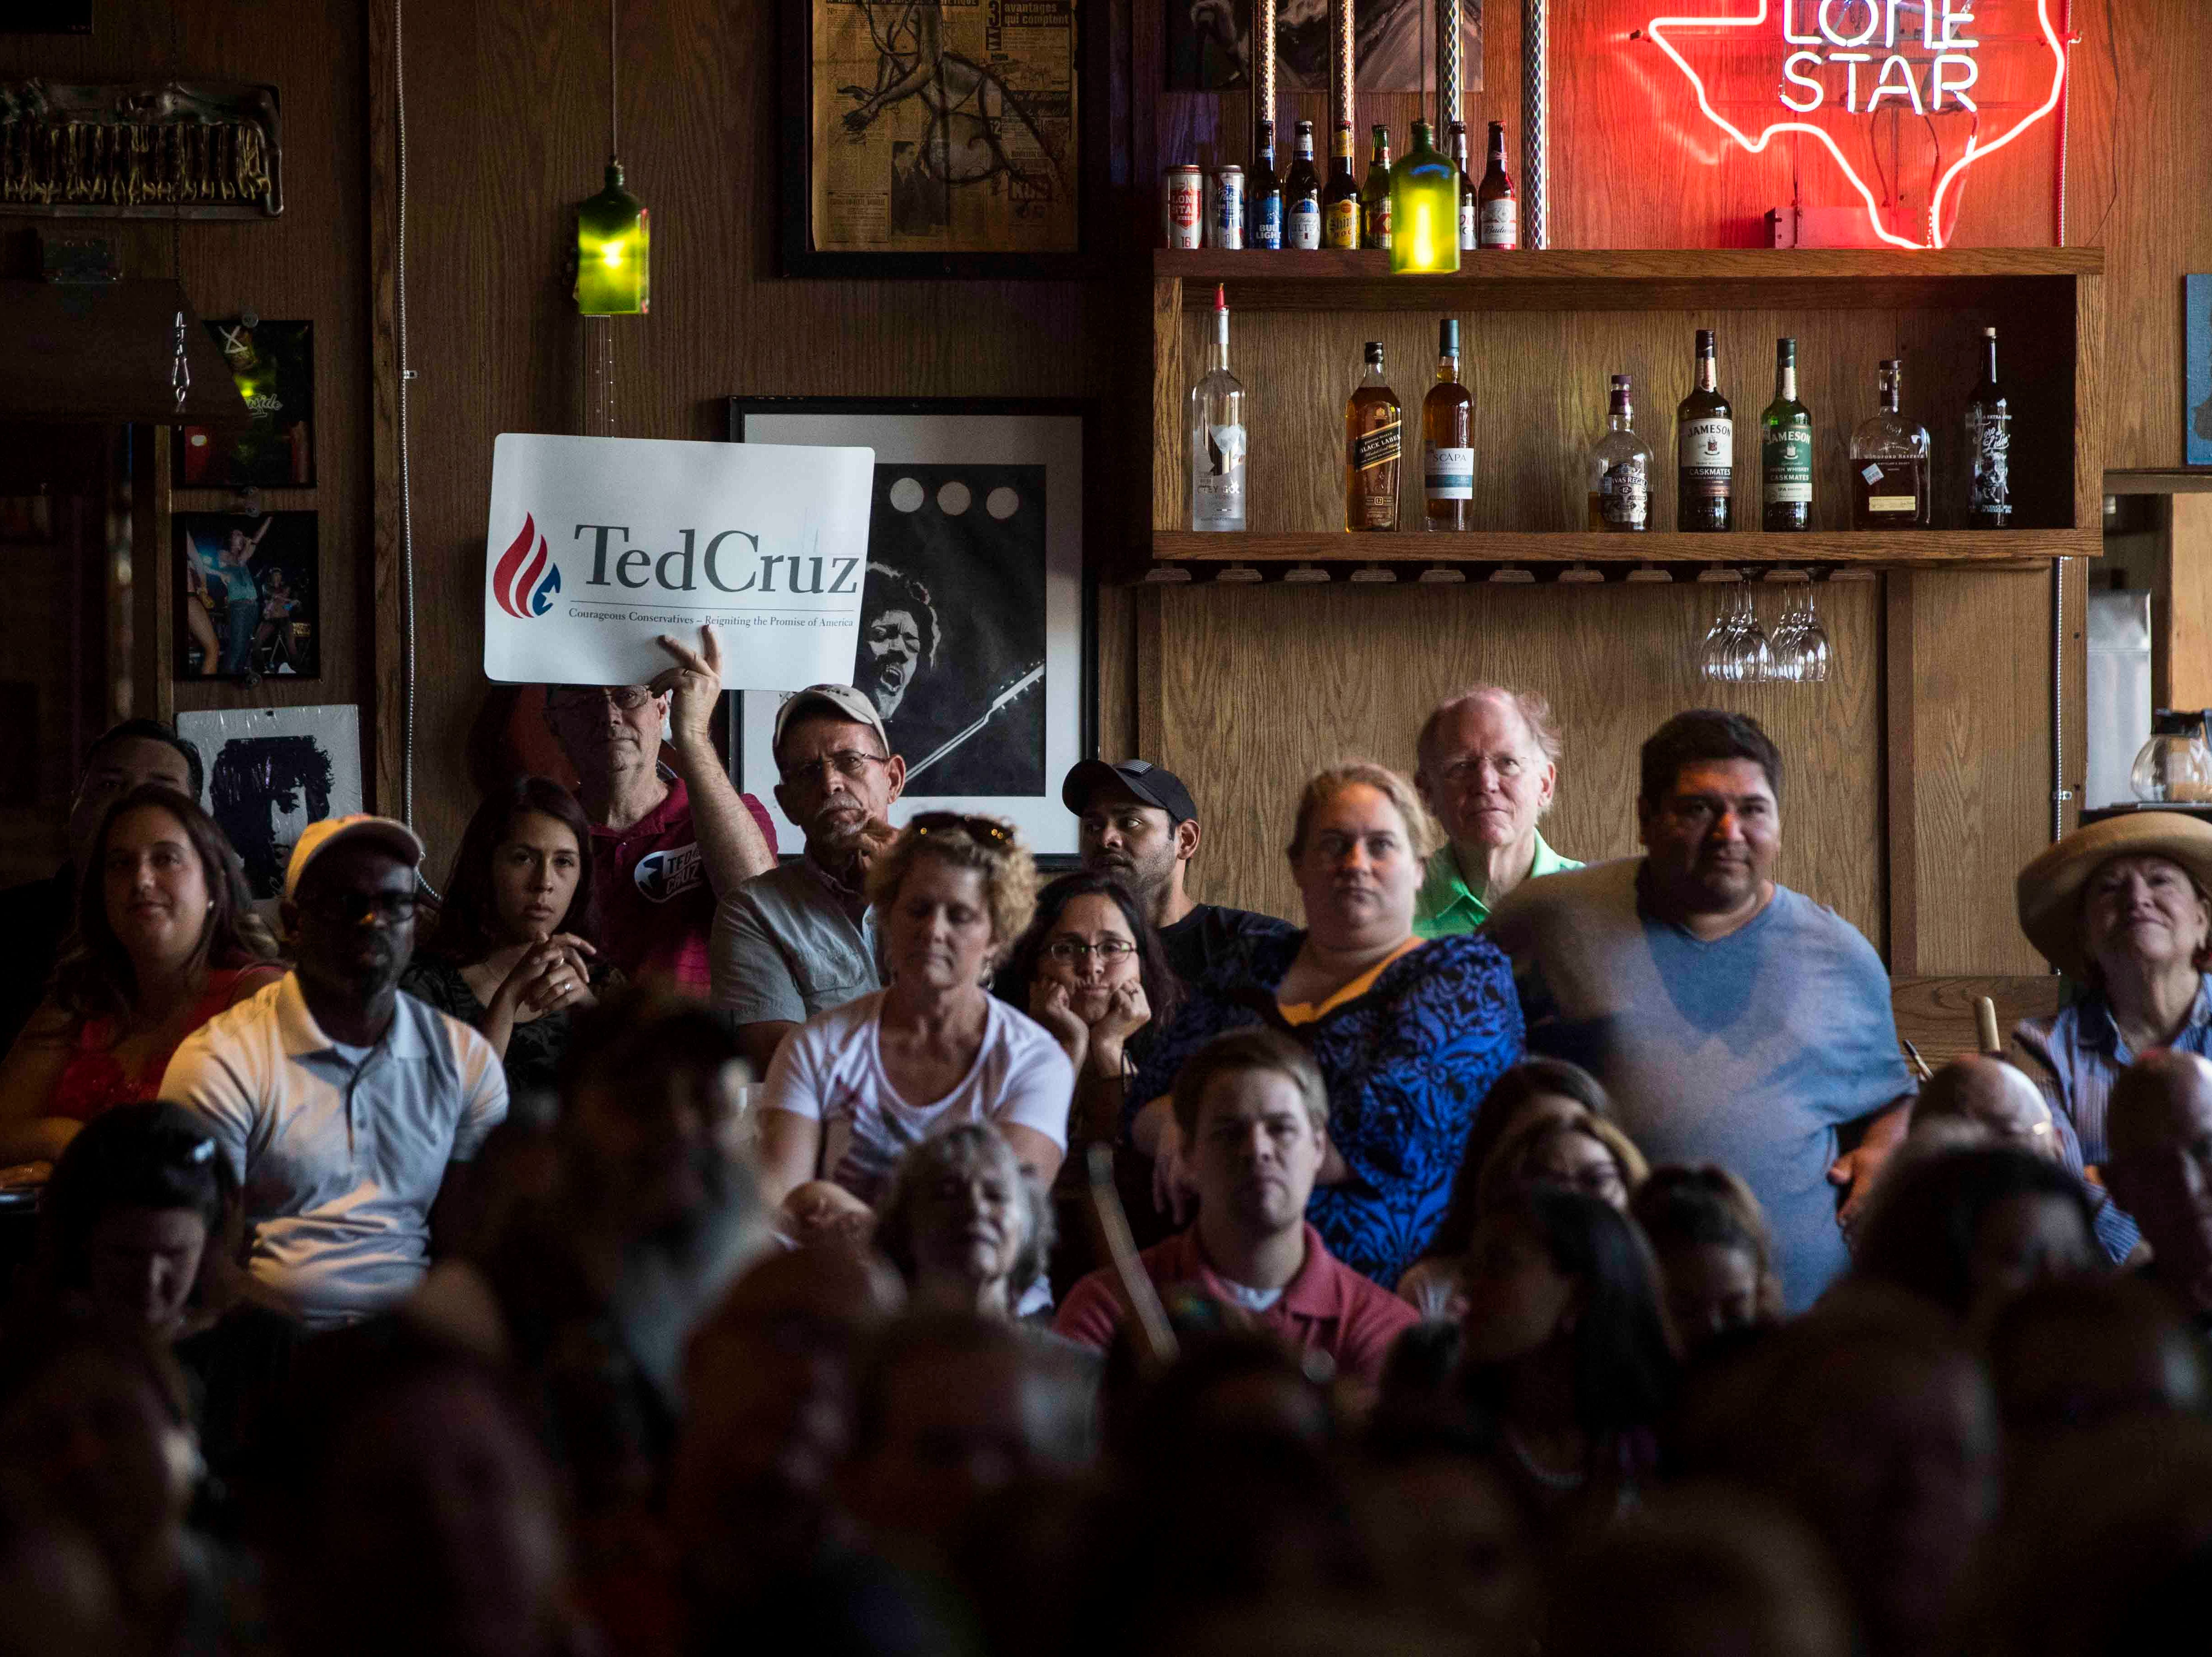 People gather for a Ted Cruz campaign event on Saturday, August 16, 2018, at House of Rock.